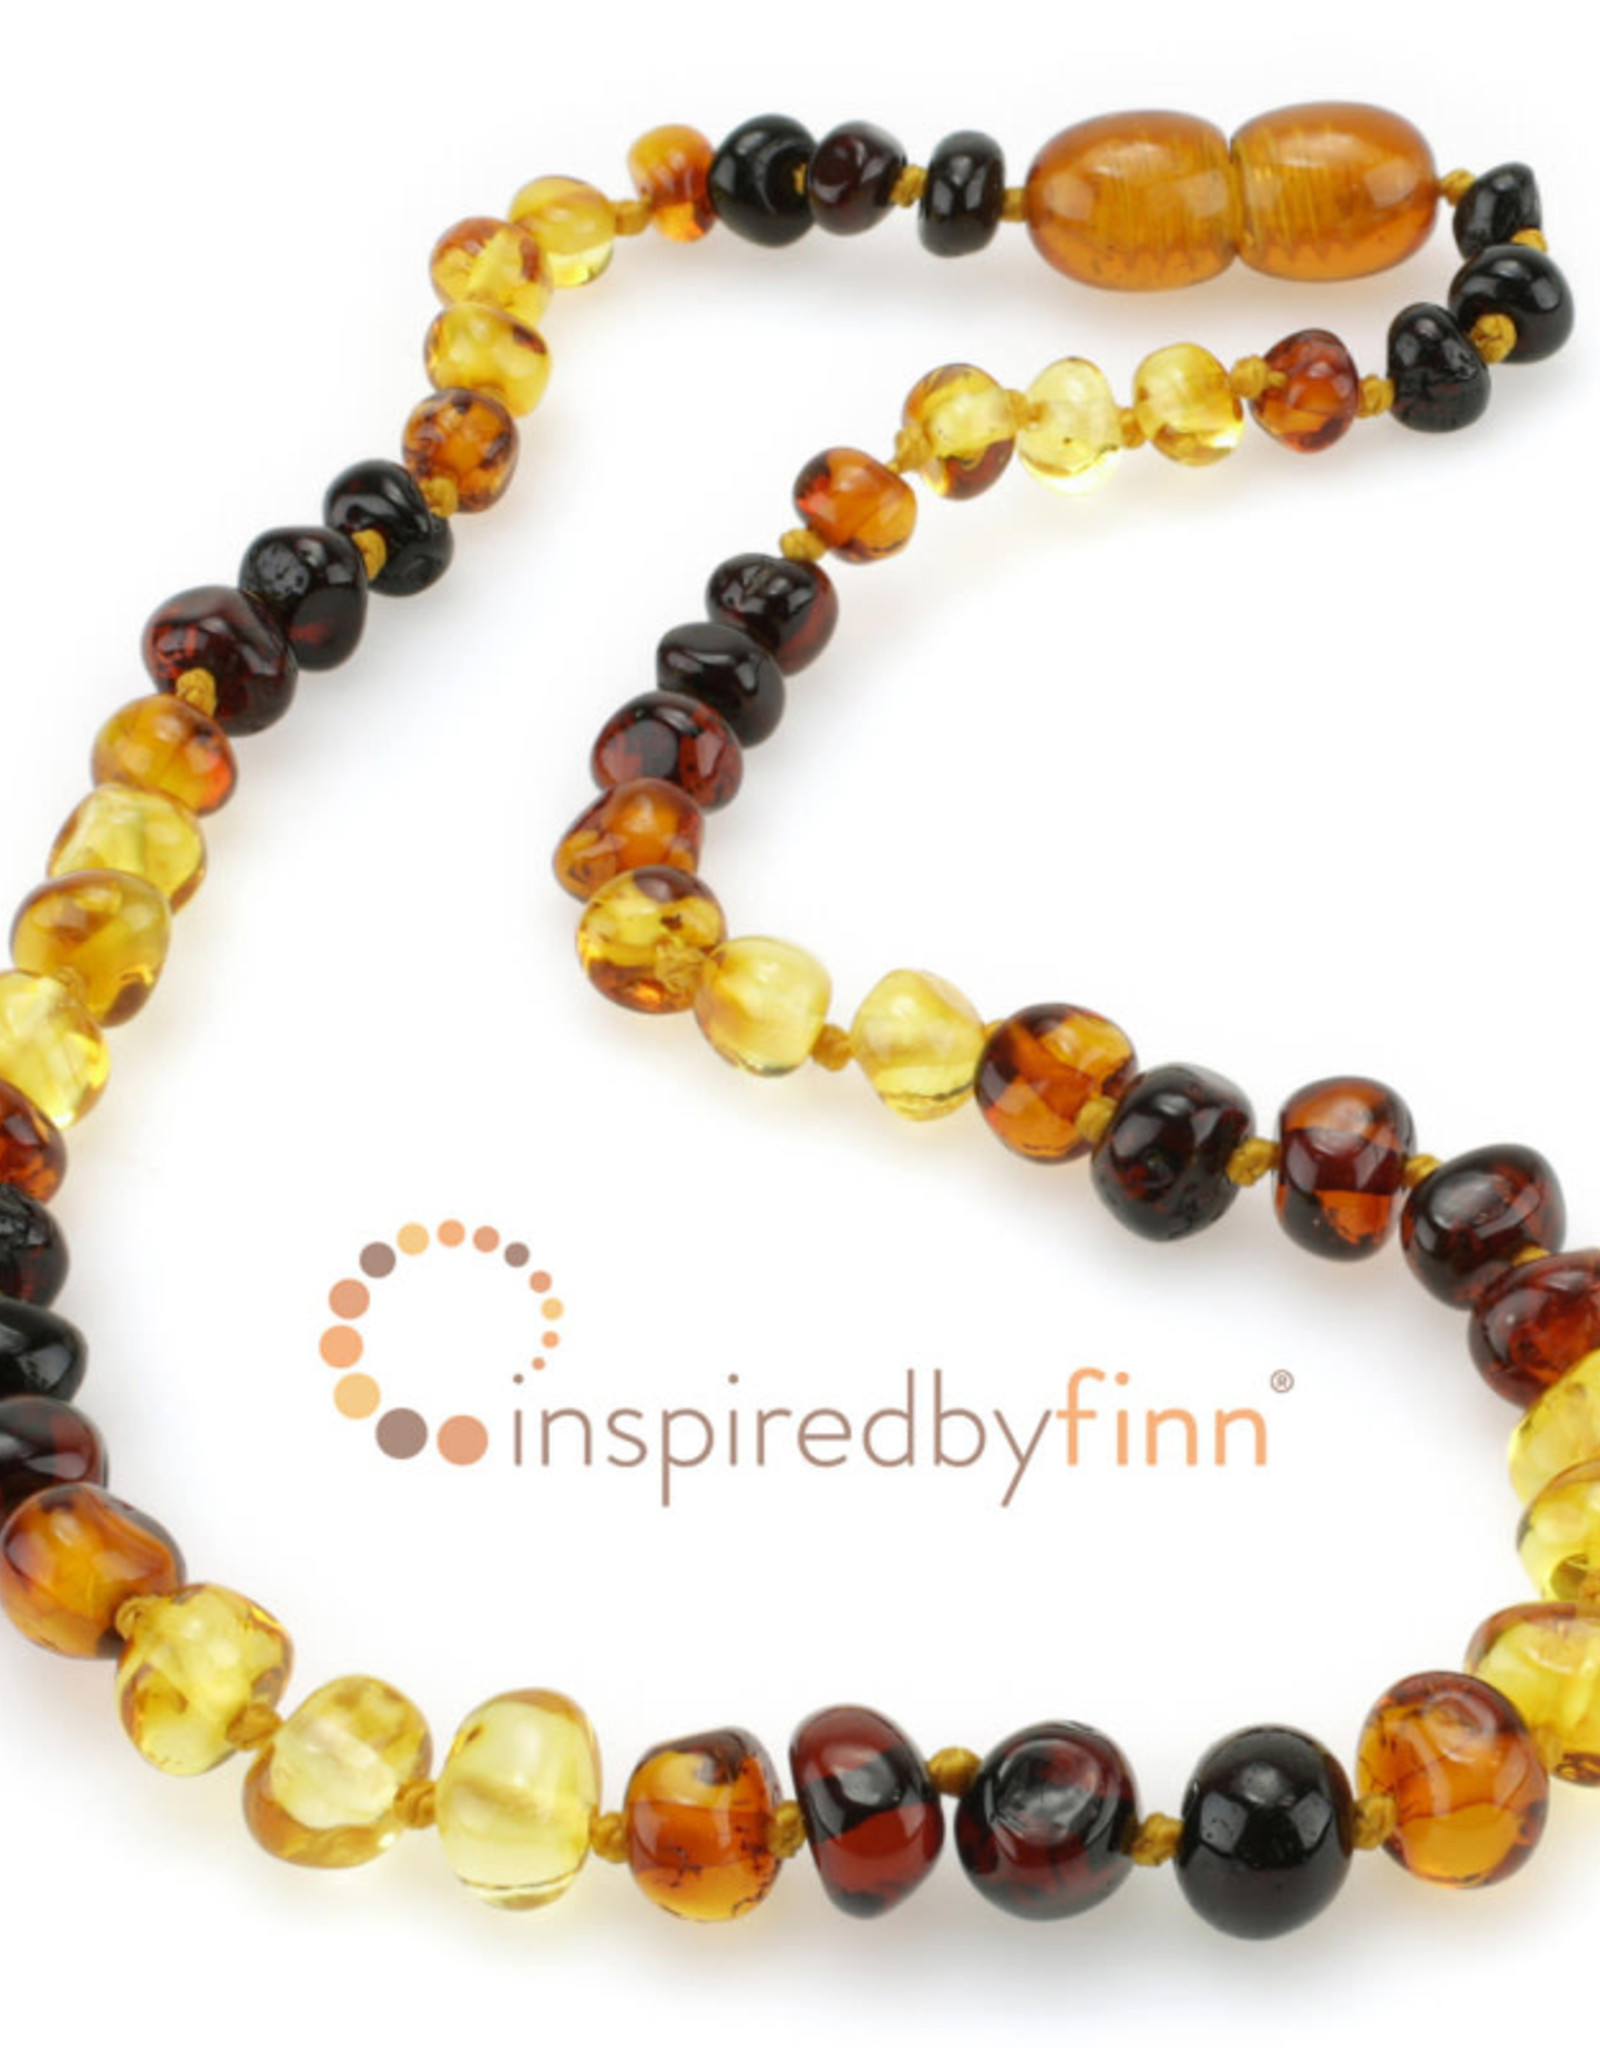 Inspired by Finn Baltic Amber Necklace - Rainbow Polished - 10.5-11.5